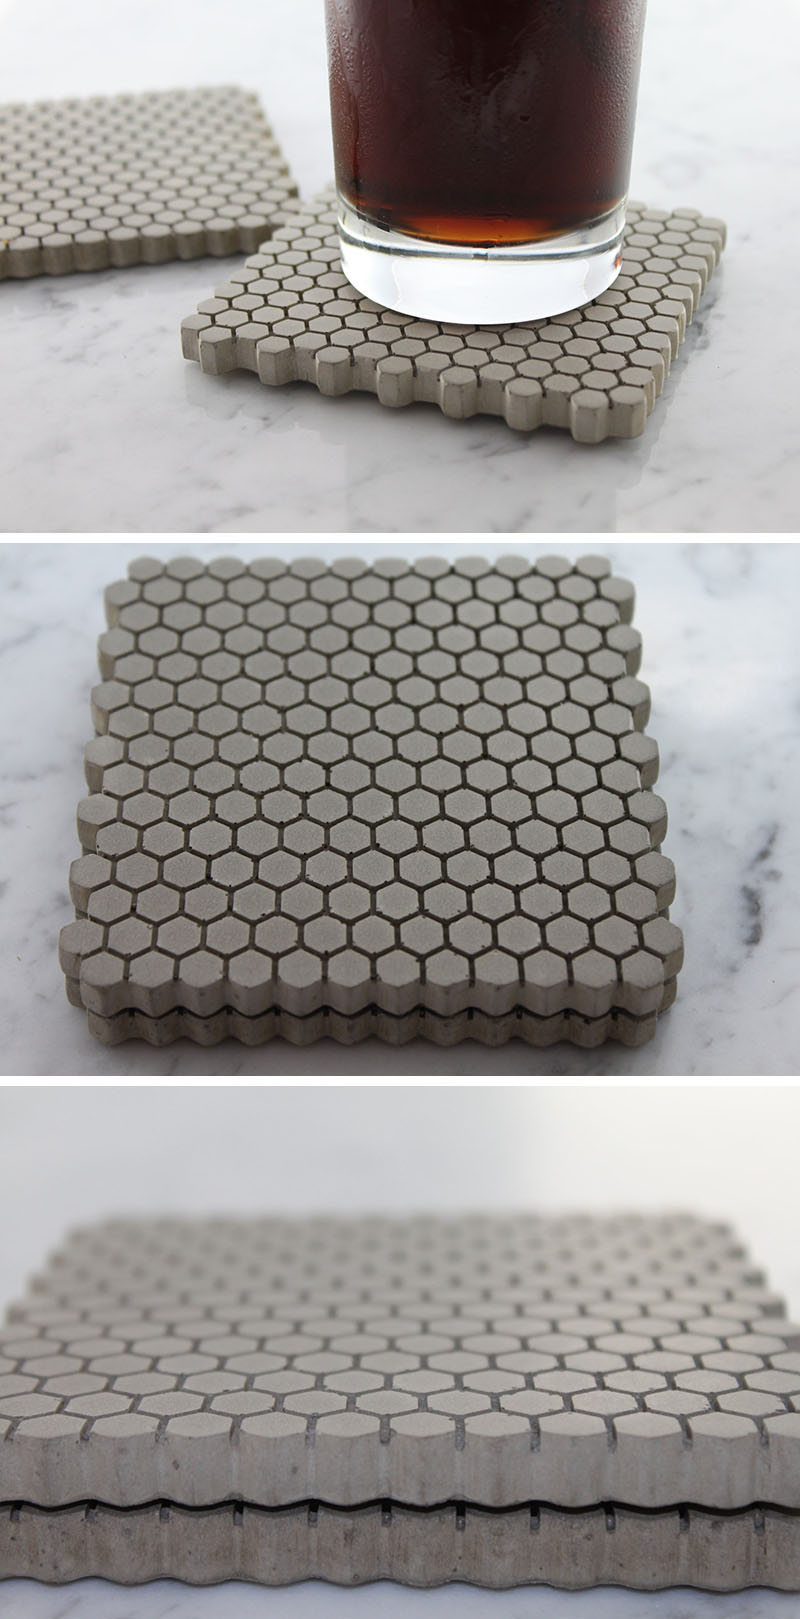 Square concrete coasters with a hexagonal pattern on the surface add a geometric element to the modern coasters.